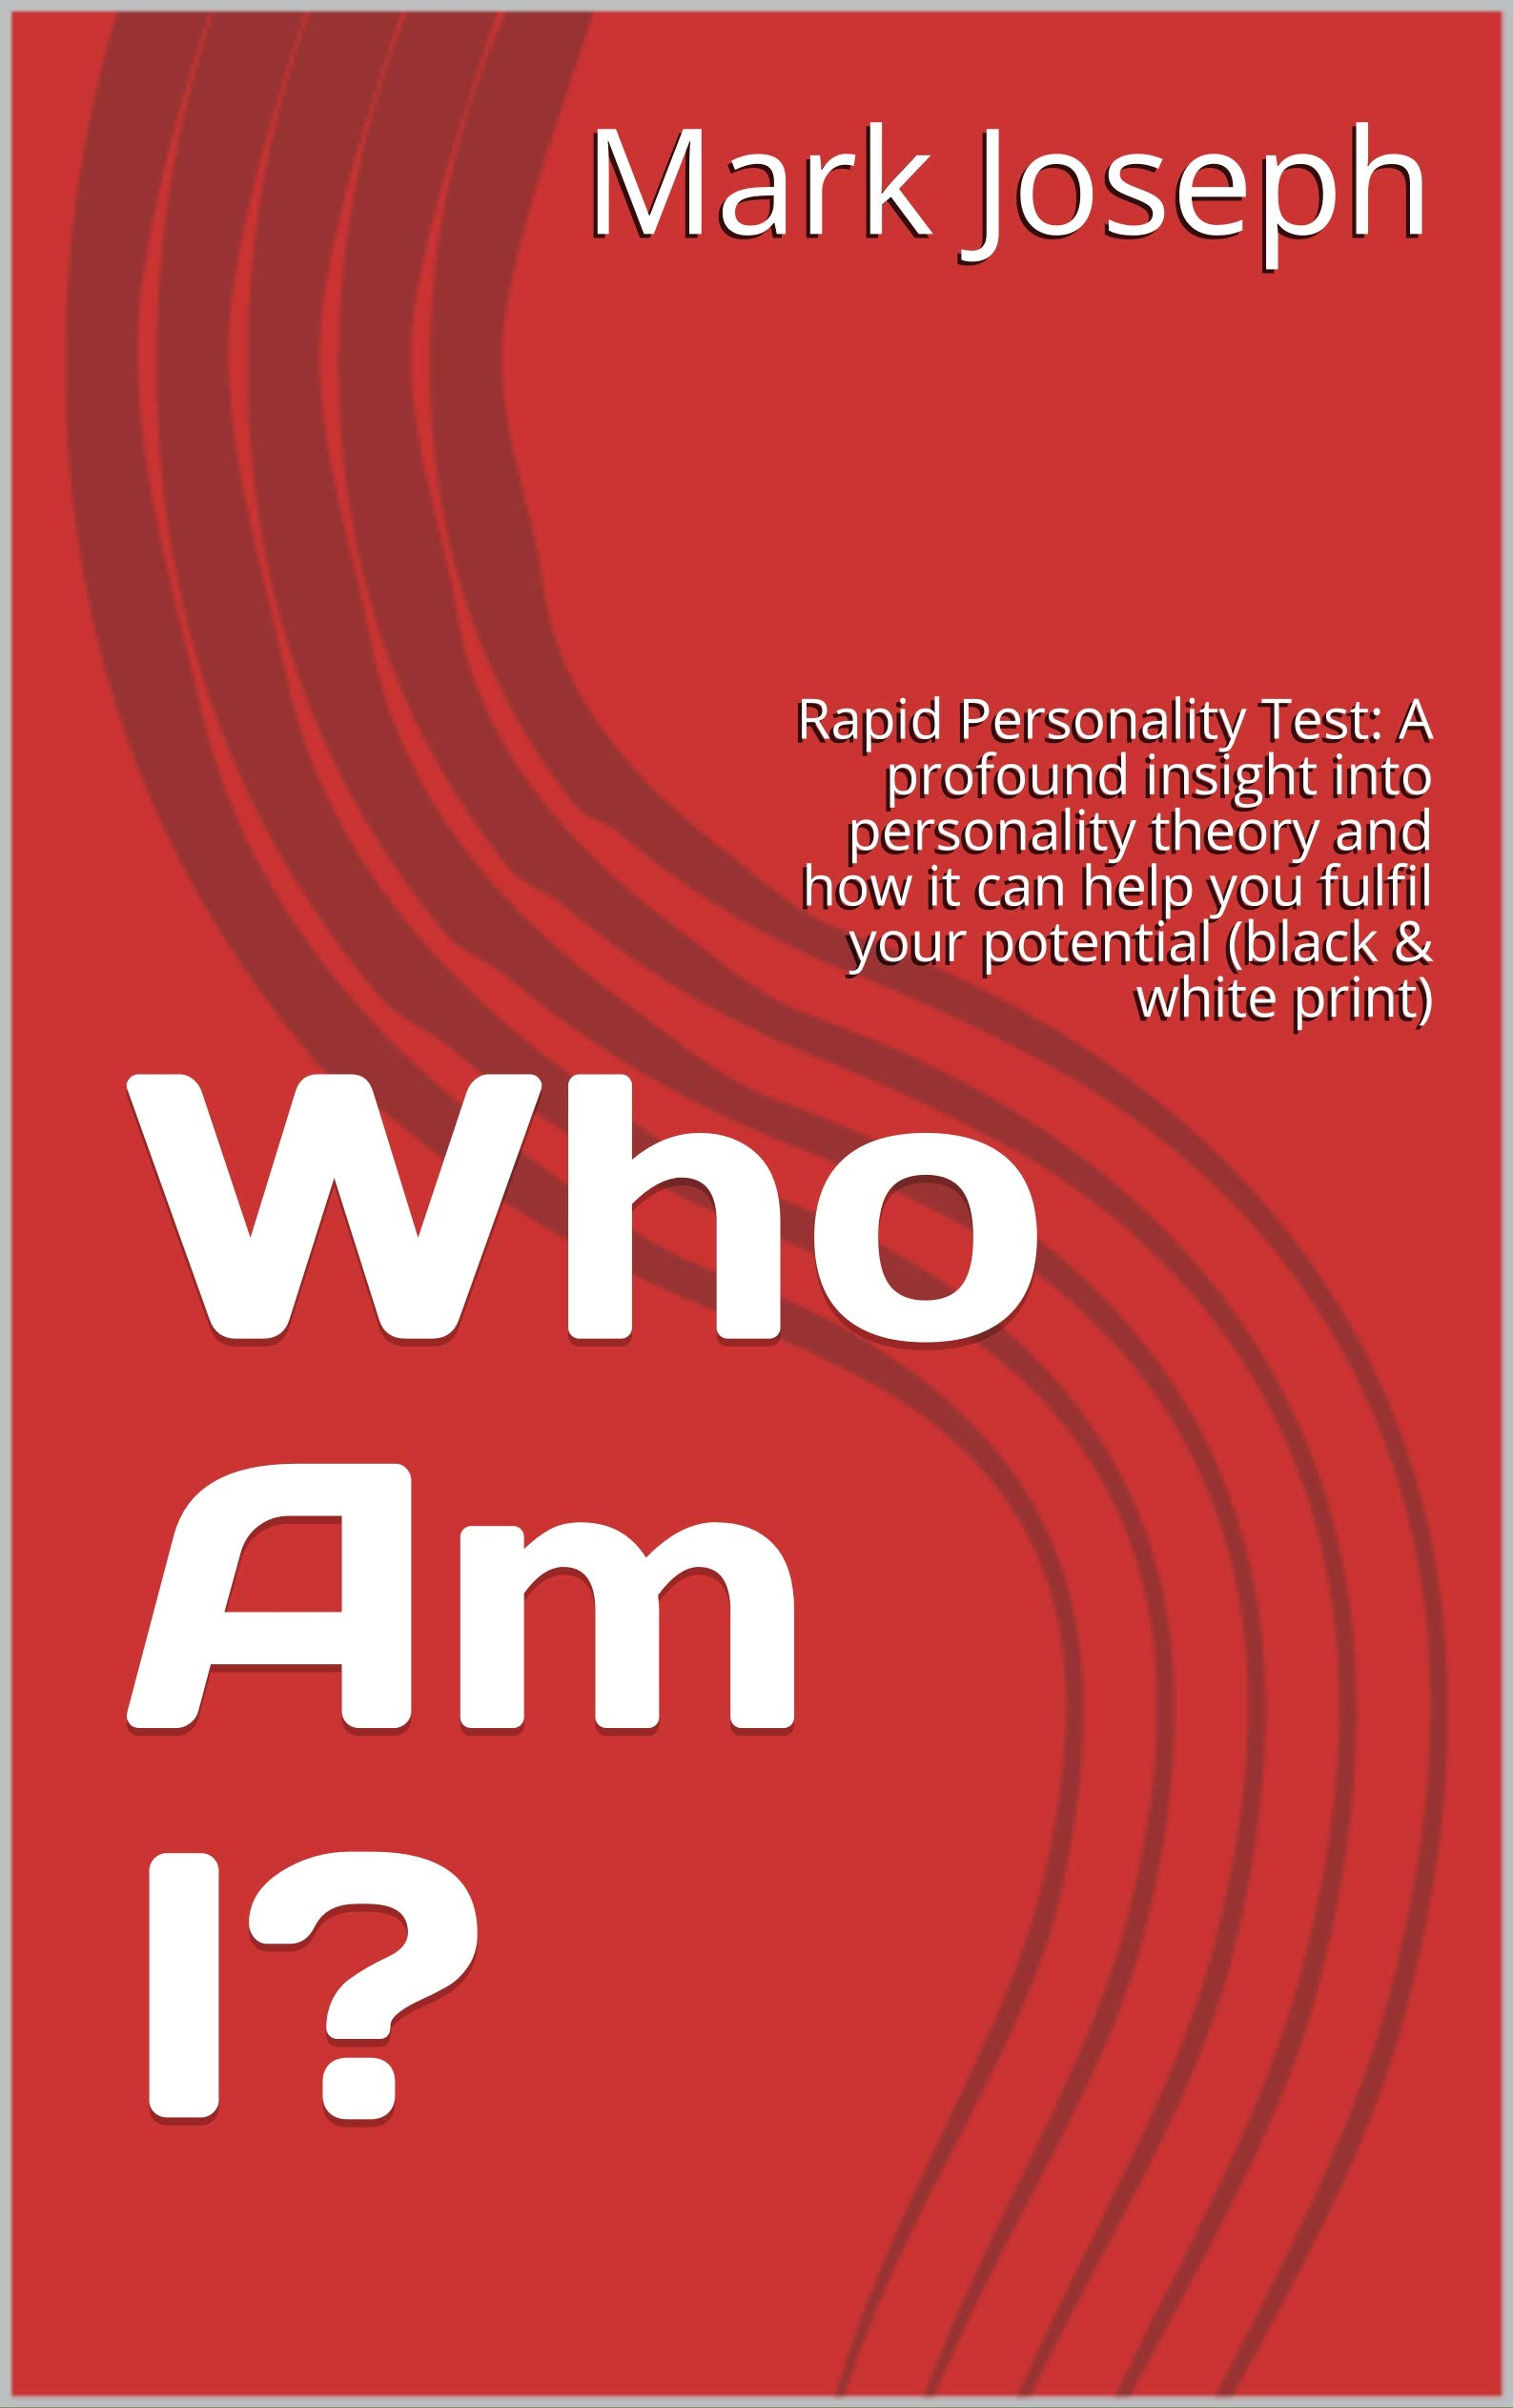 Who Am I?: Rapid Personality Test: A profound insight into personality theory and how it can help you fulfil your potential (black & white print) (Self-help psychology: Personality Book 1)